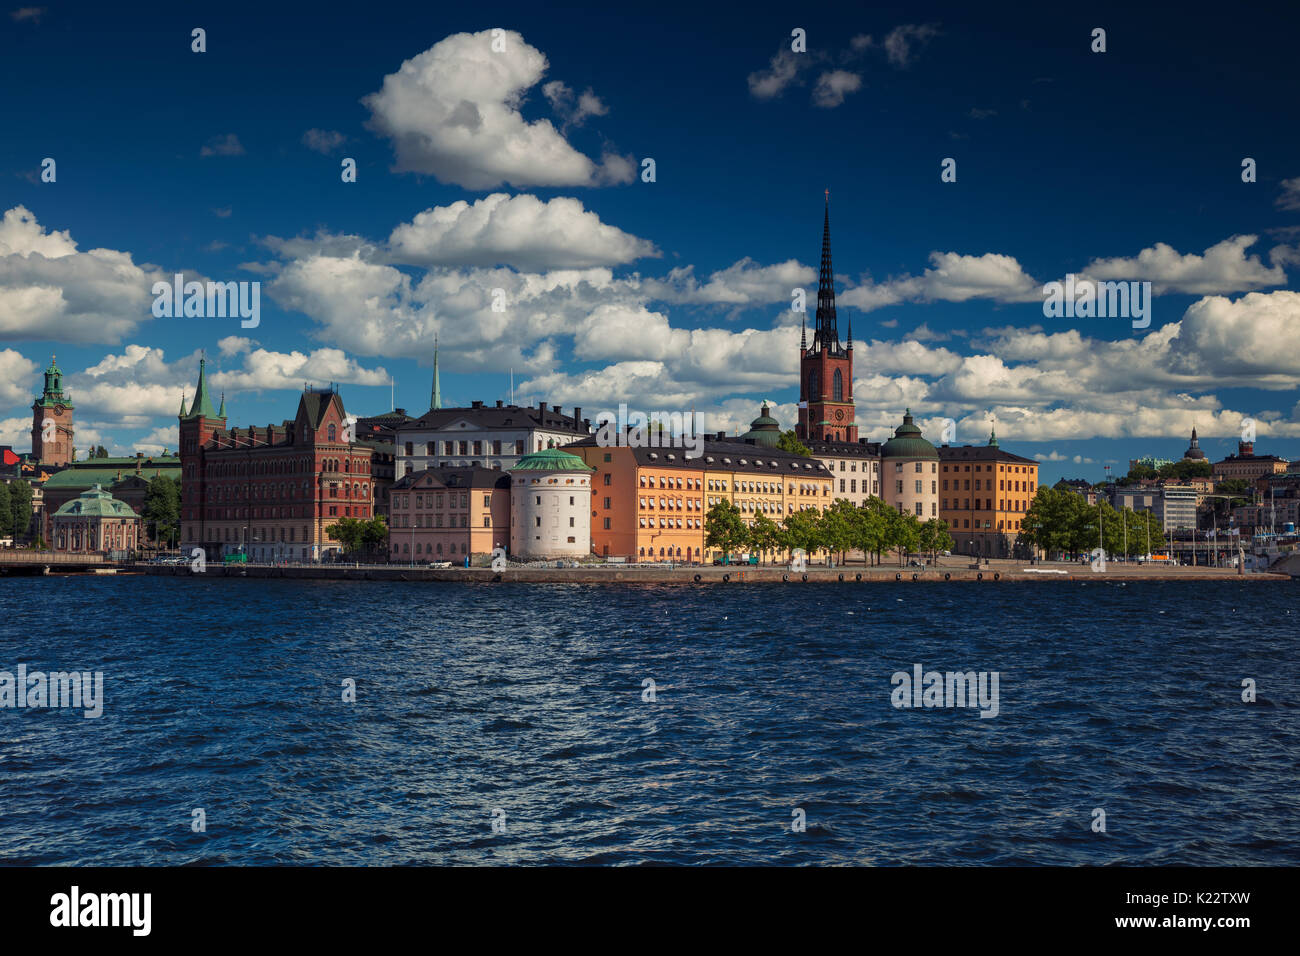 Stockholm. Cityscape image of old town Stockholm, Sweden during during sunny day. - Stock Image